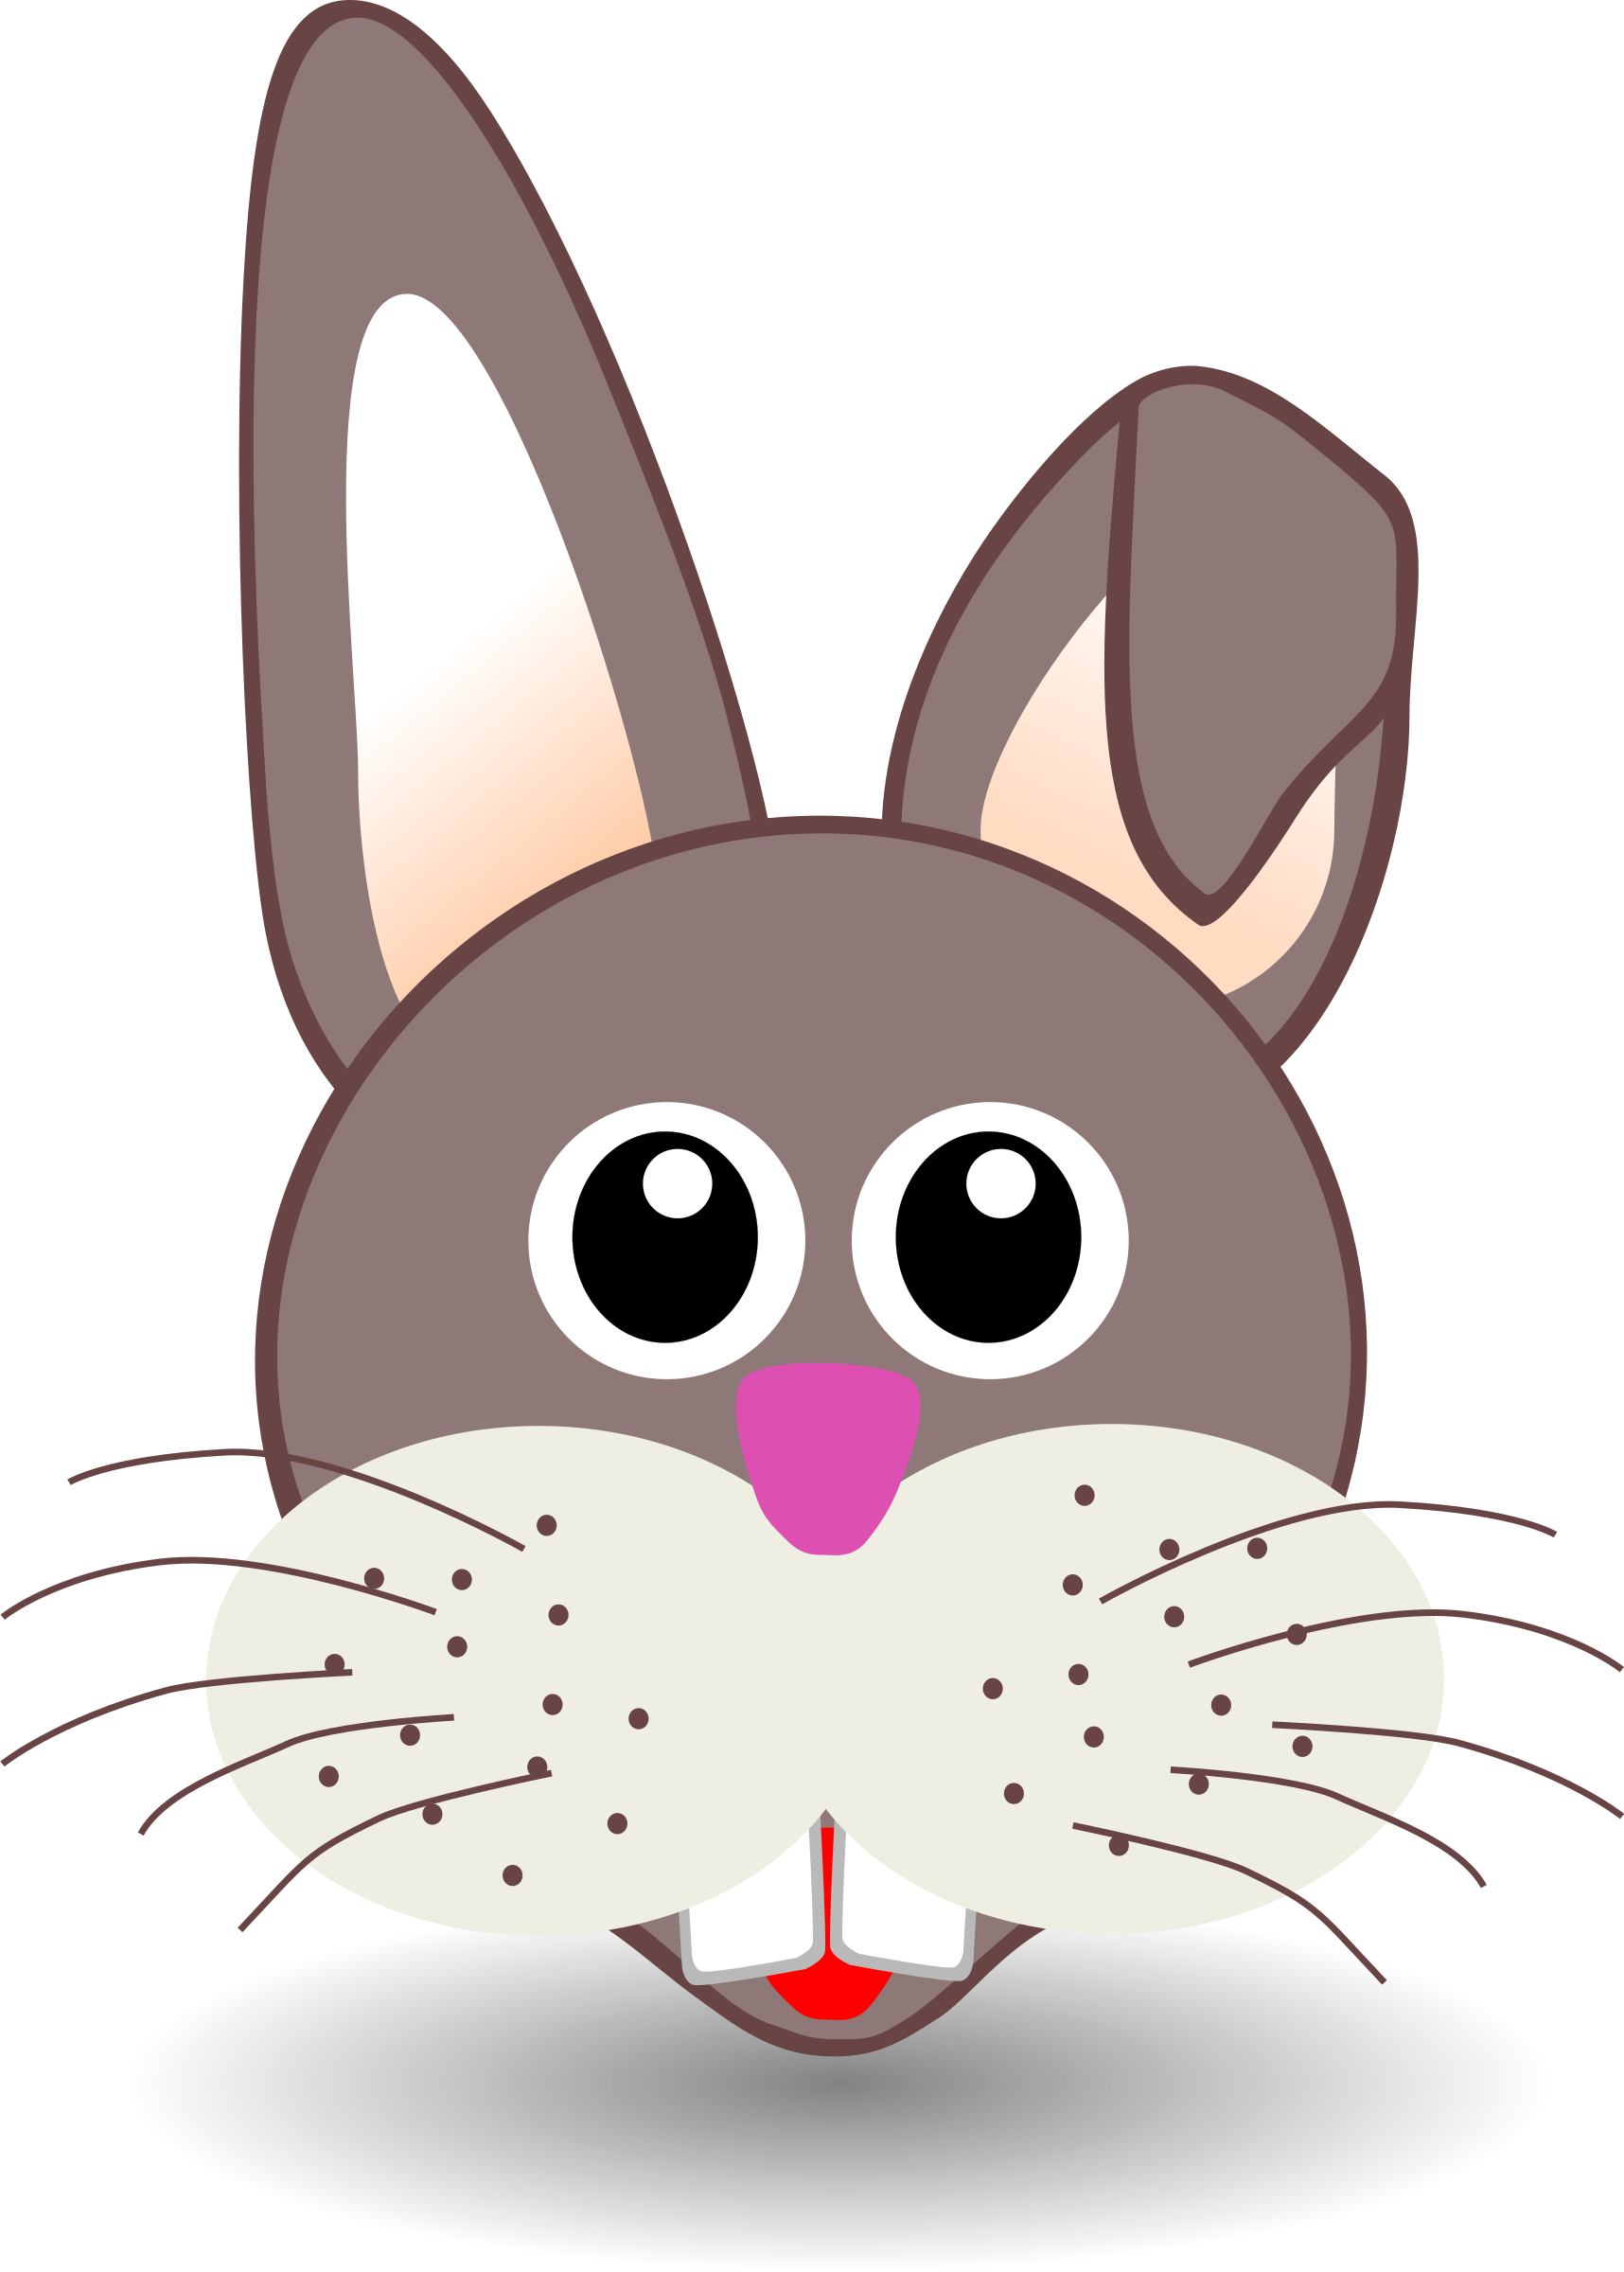 Clipart bunny face. Funny big image png